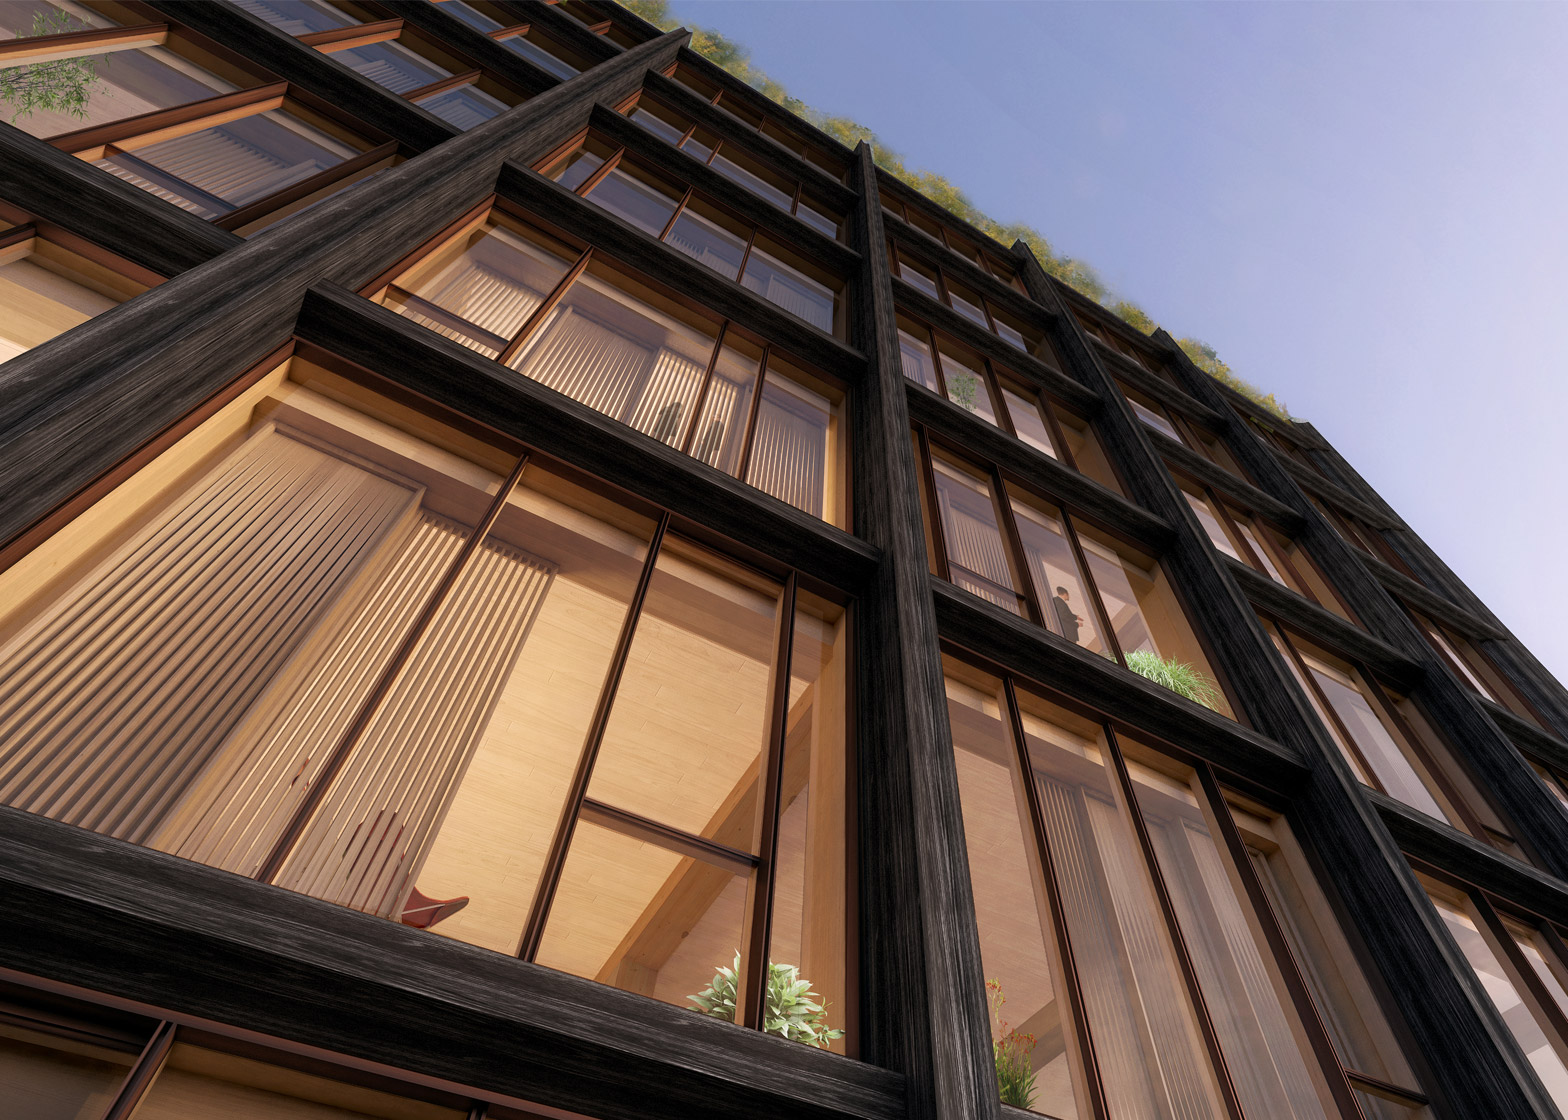 SHoP Architects' wooden skyscraper for New York gets the chop